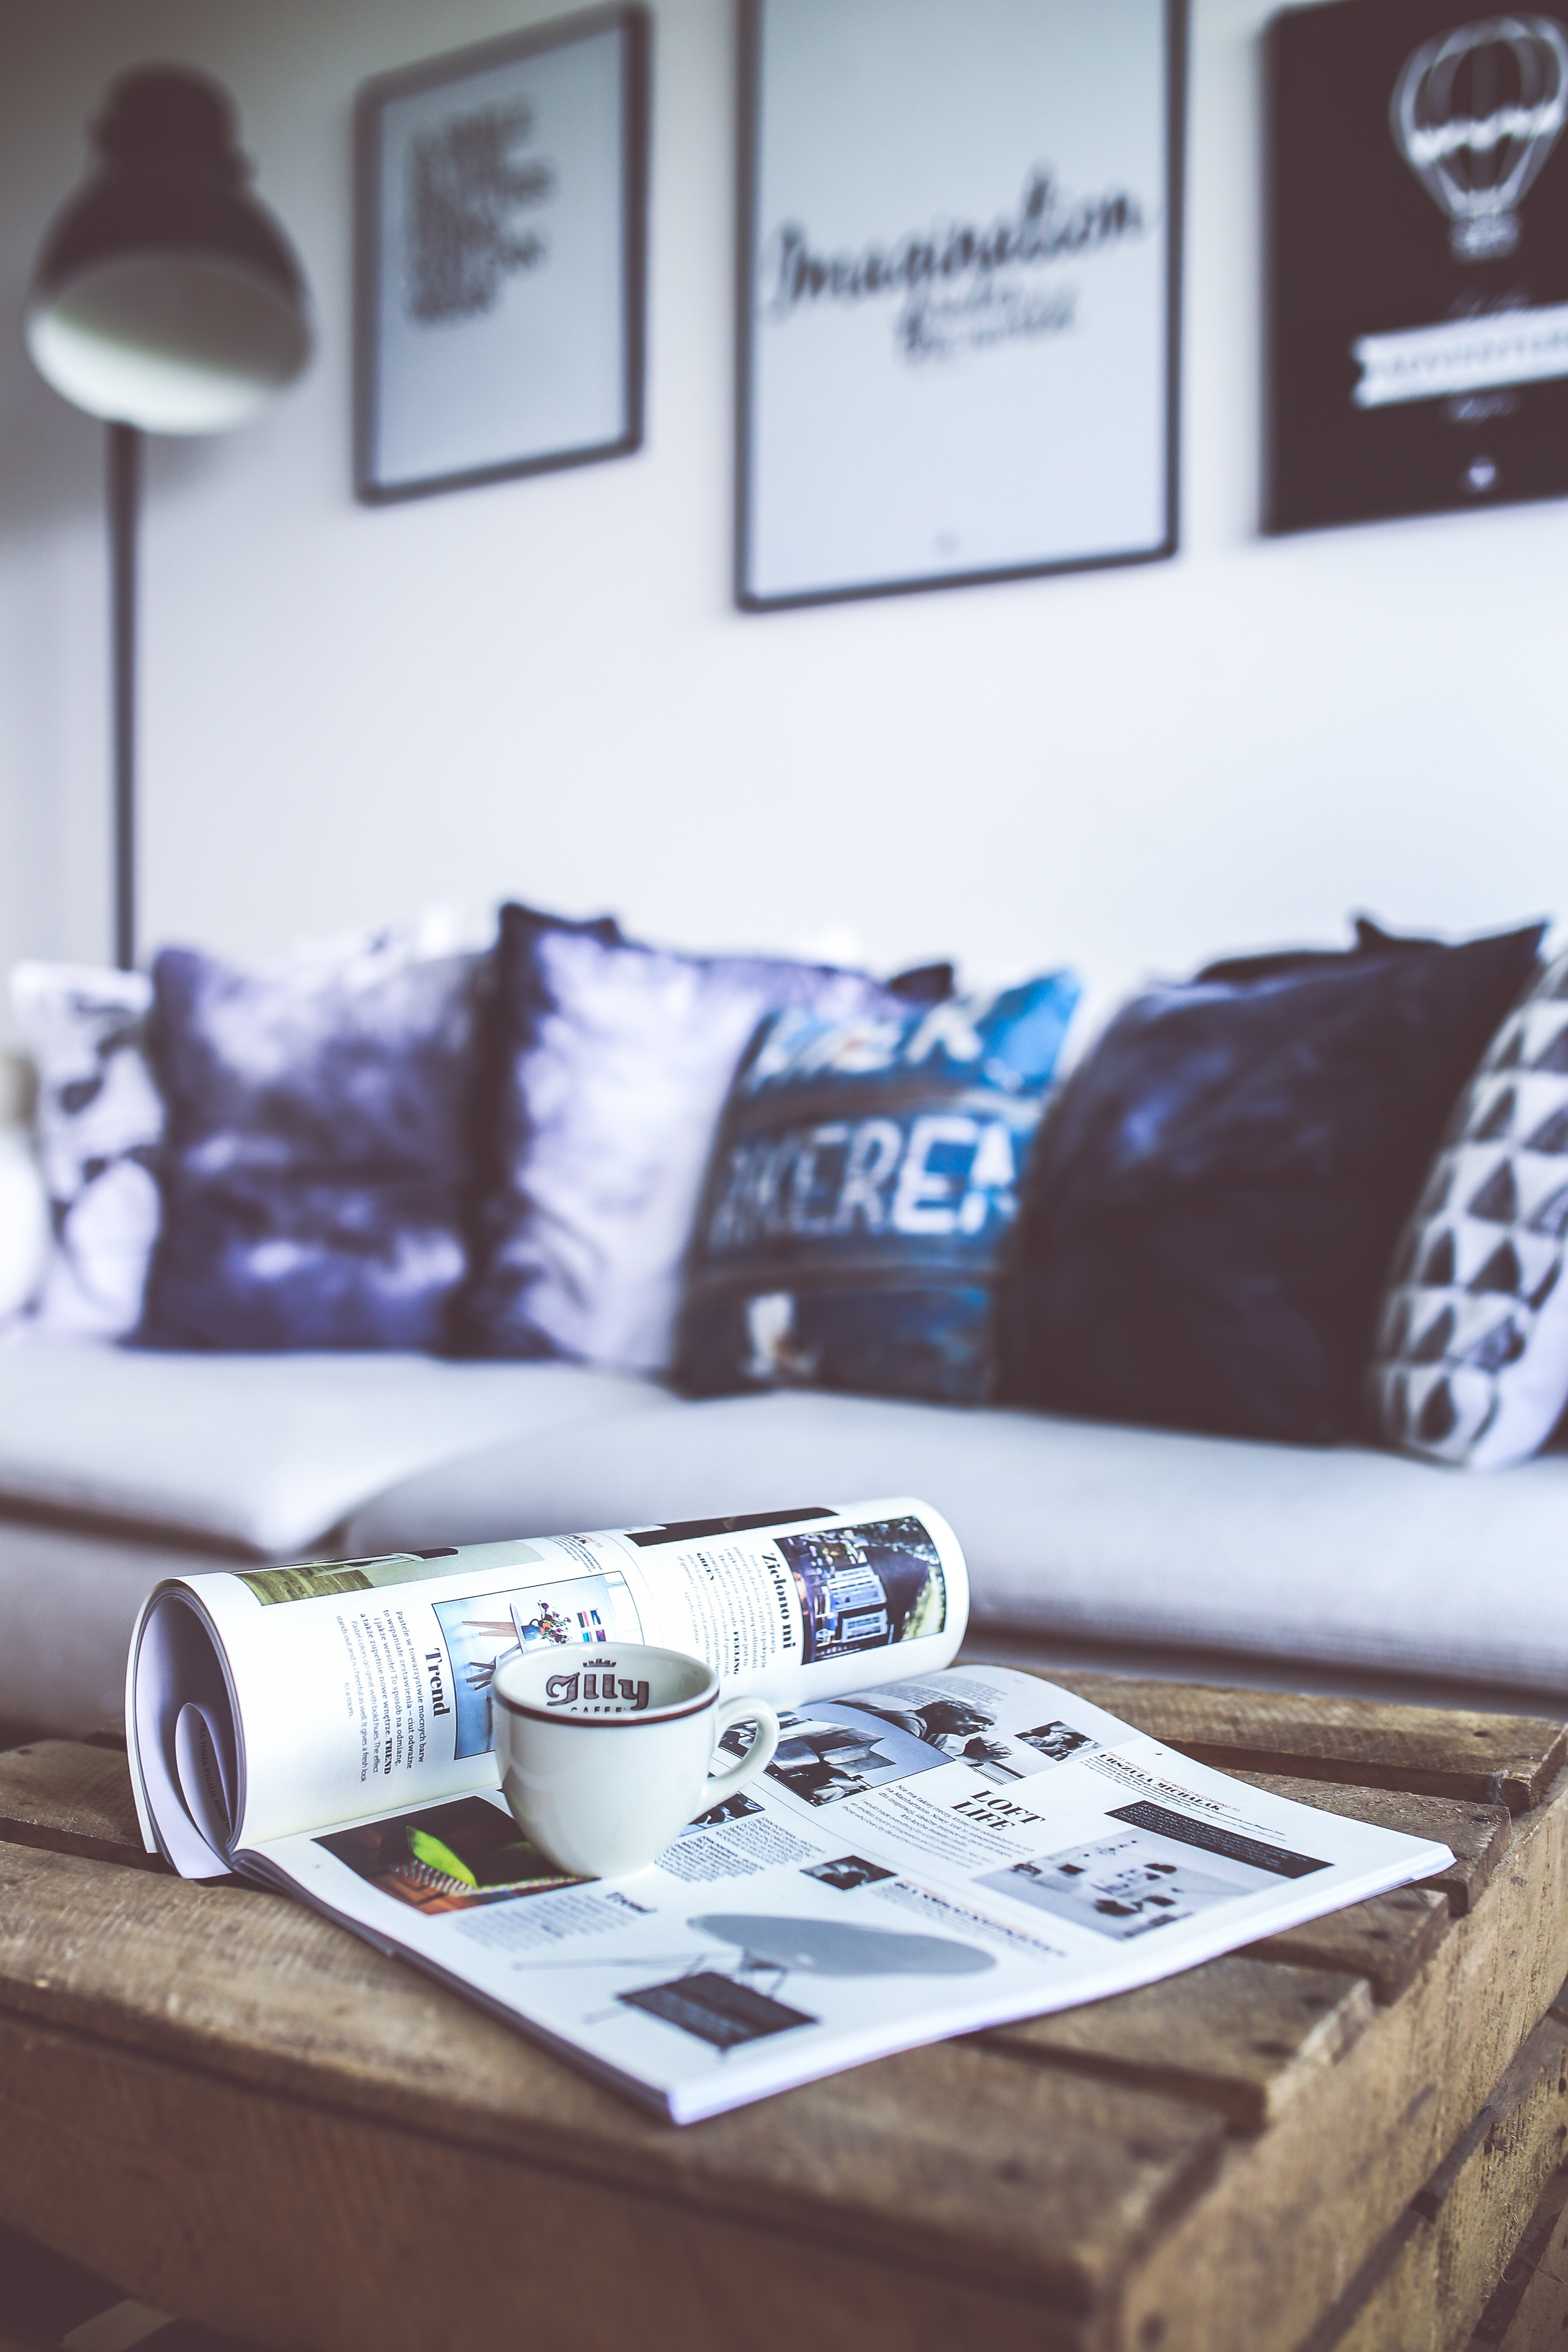 couch-home-livingspace-5943